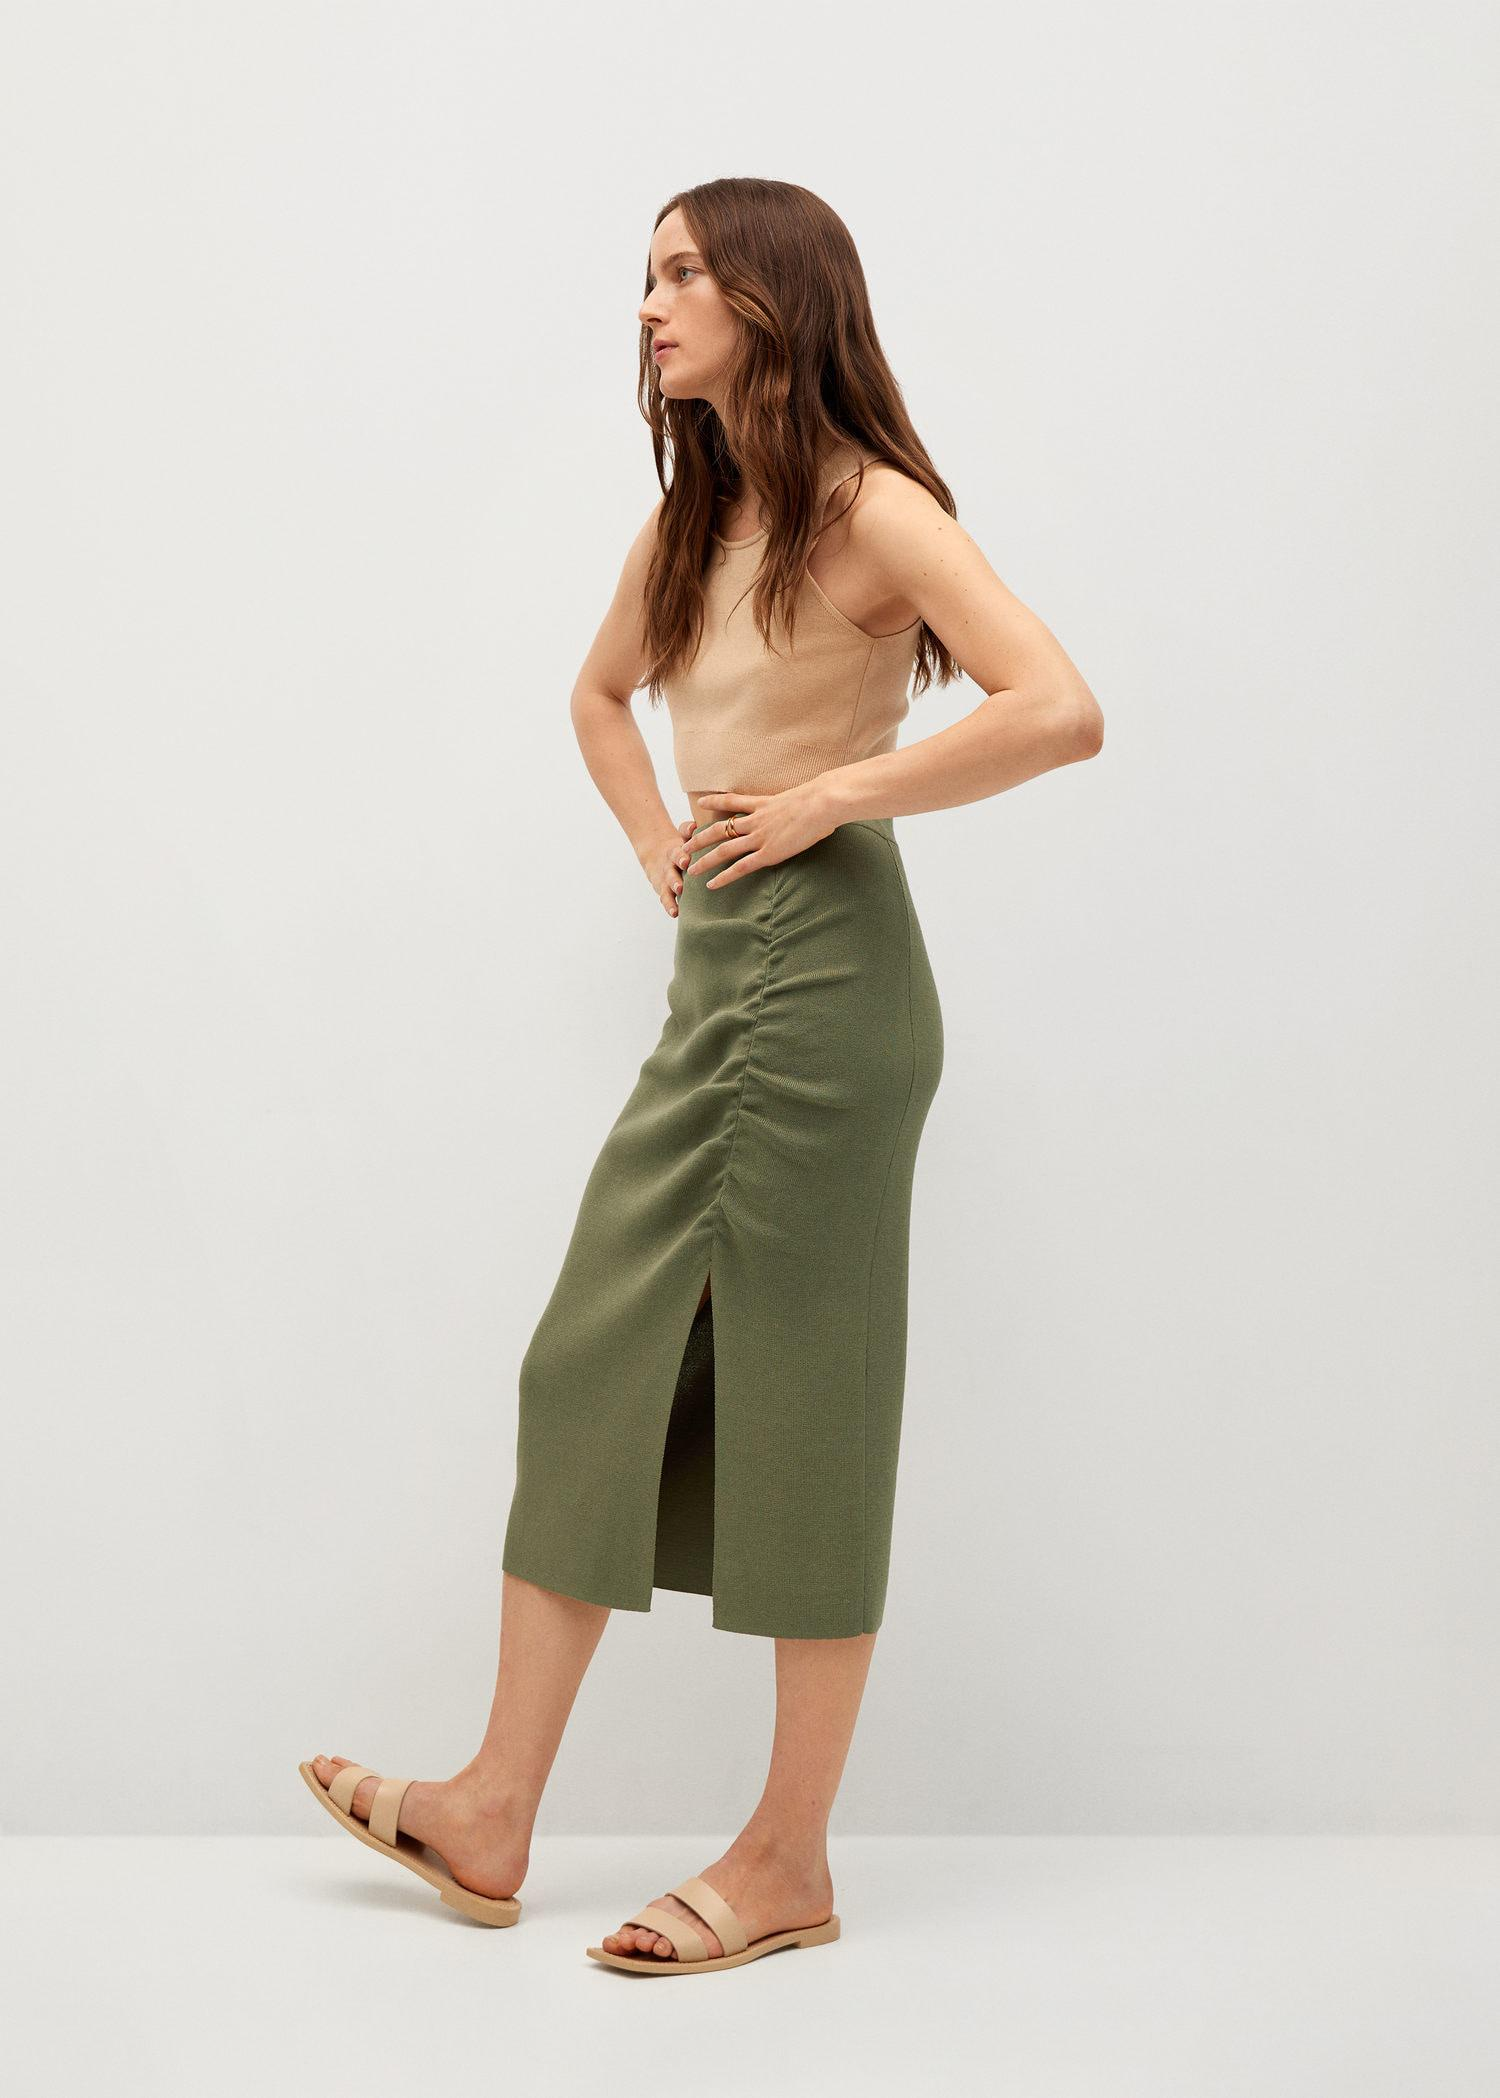 Ruched detail skirt 4